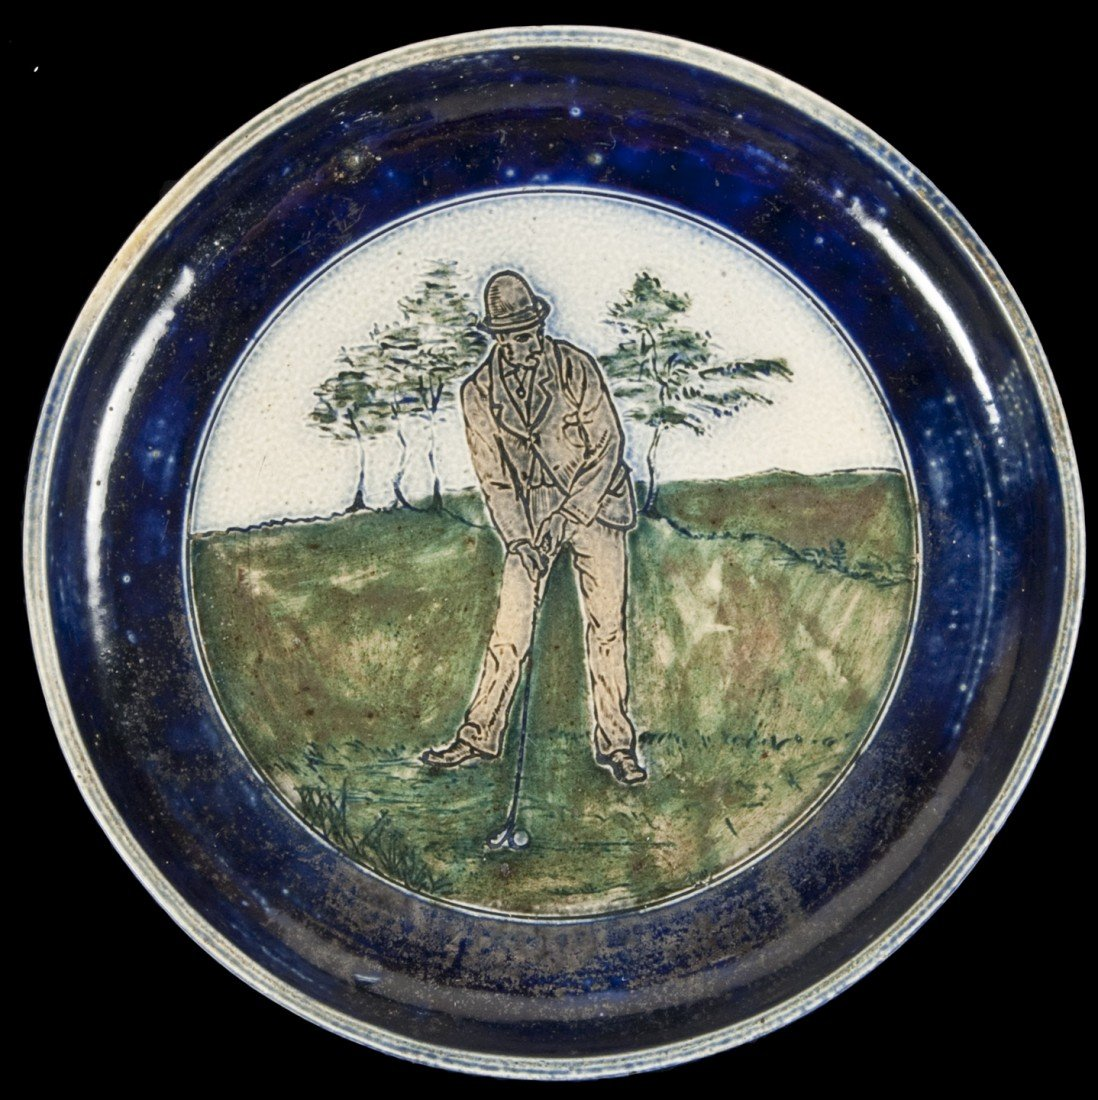 89: Stoneware plate with golfing scene by Martin